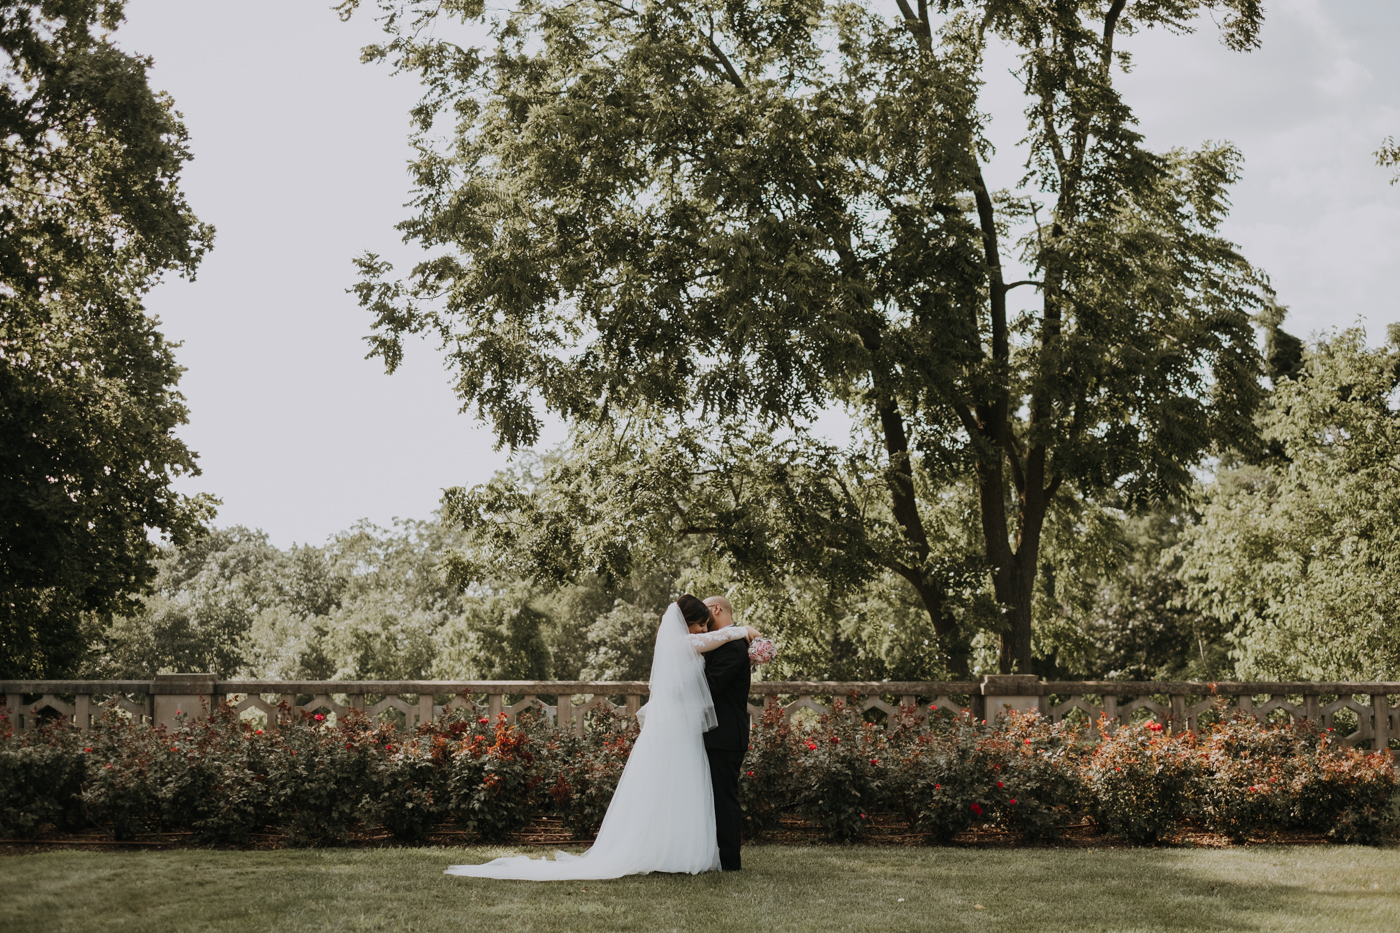 tampa wedding photography | brooklyn wedding photography | noura + amr | investment